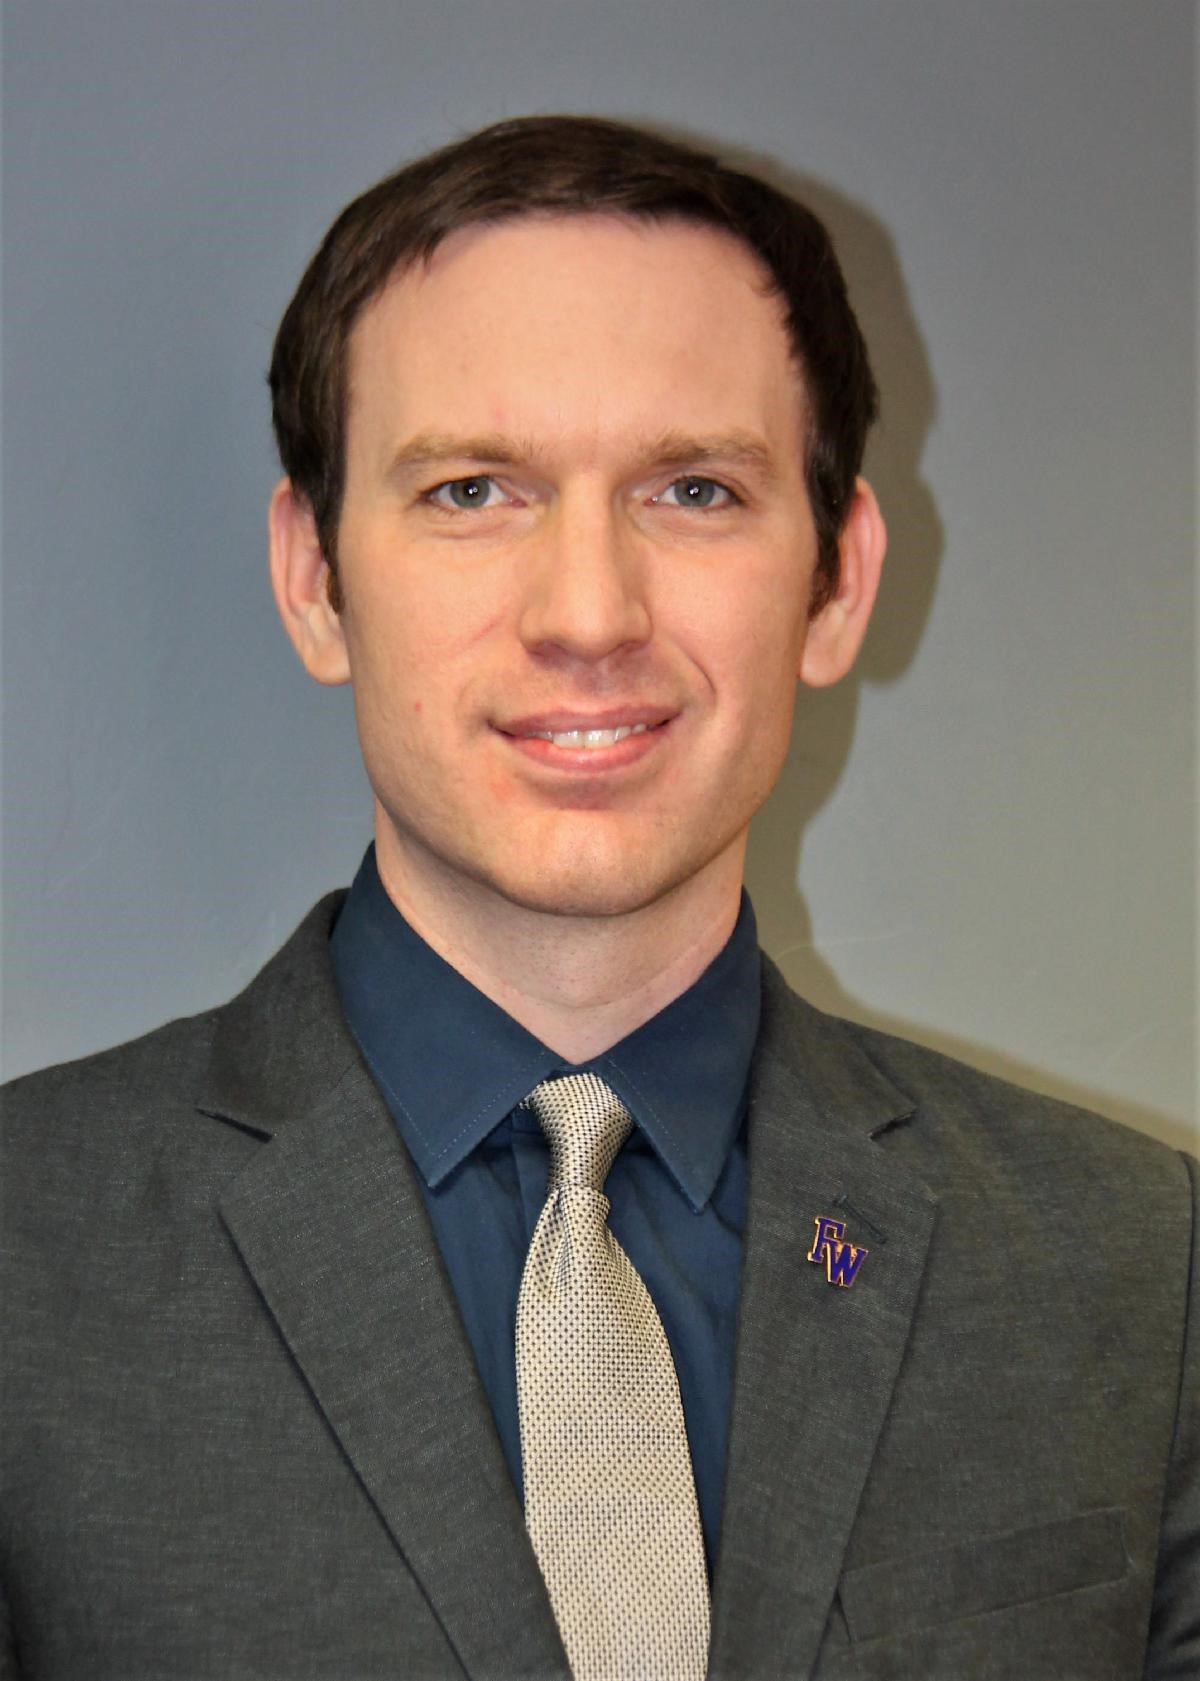 Chistopher Pankratz in suit and tie with Flowing Wells pin.